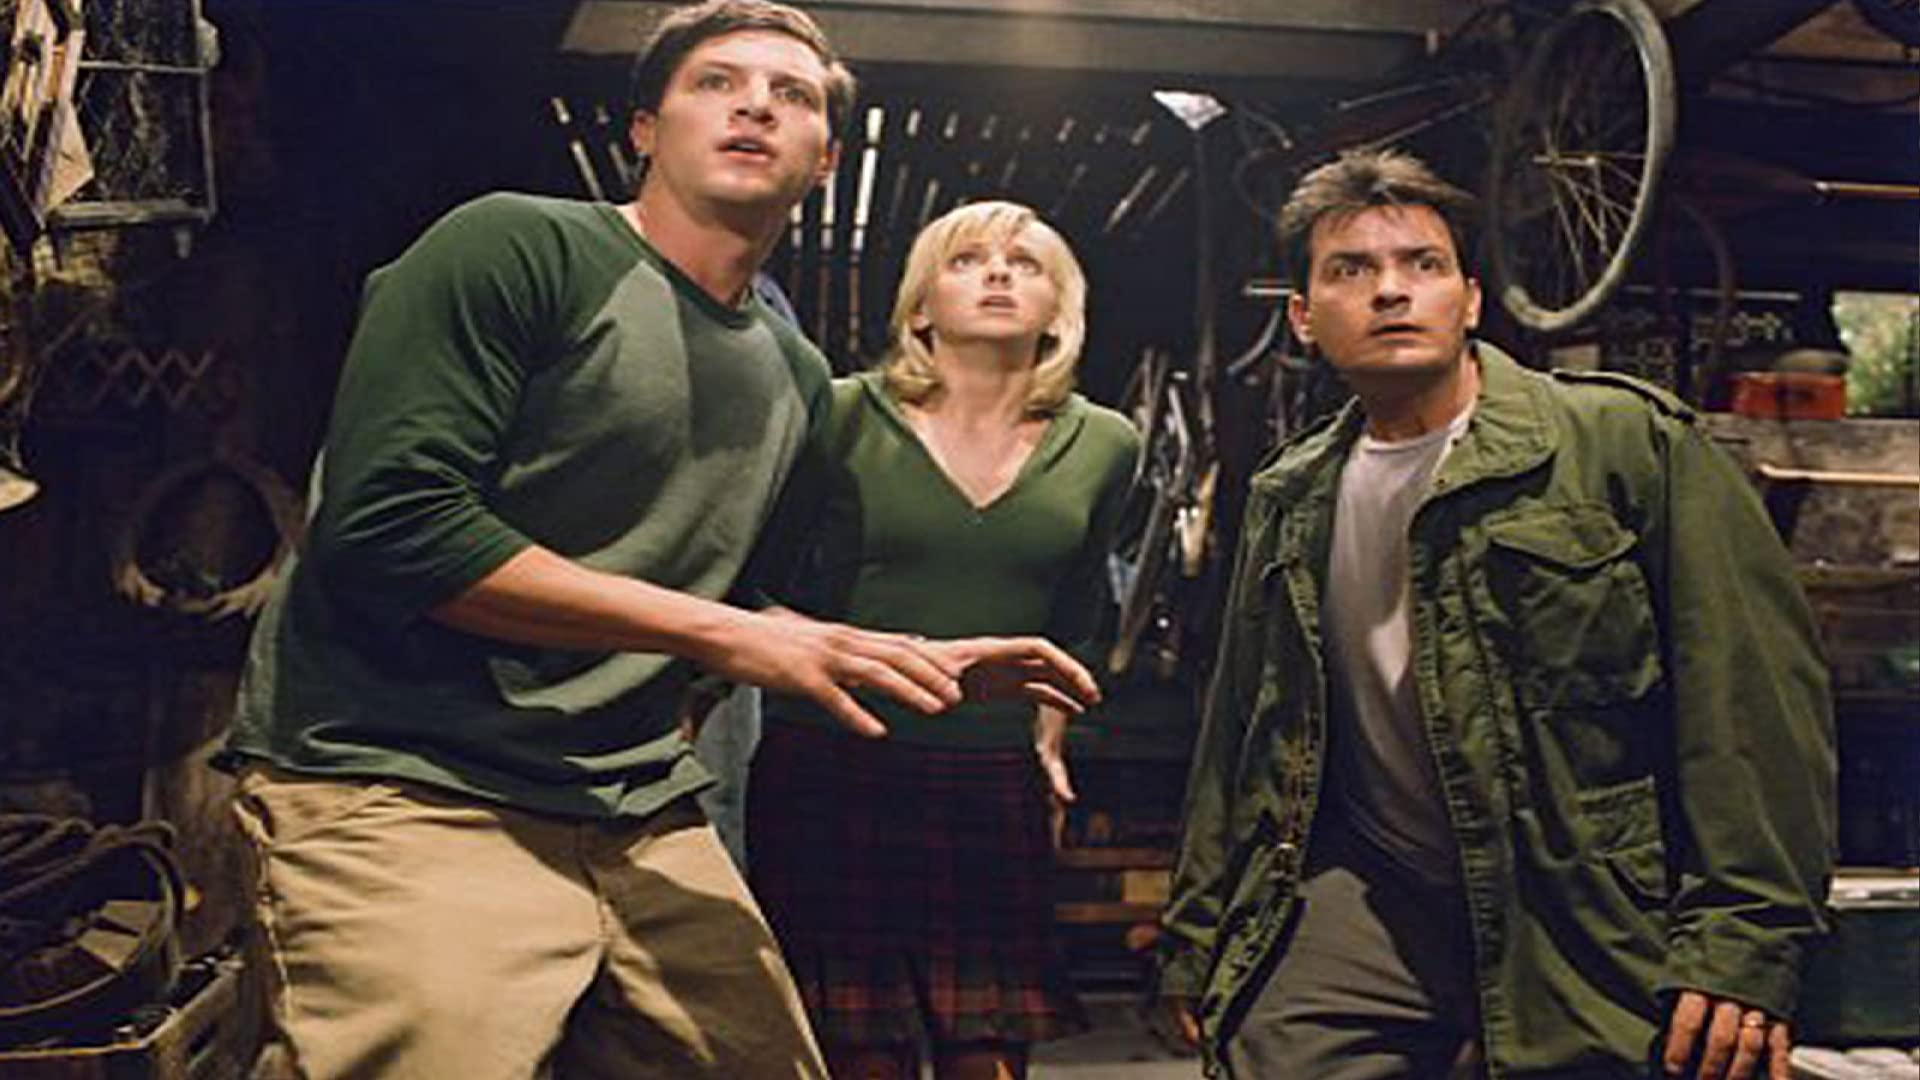 Watch Scary Movie 4 Prime Video